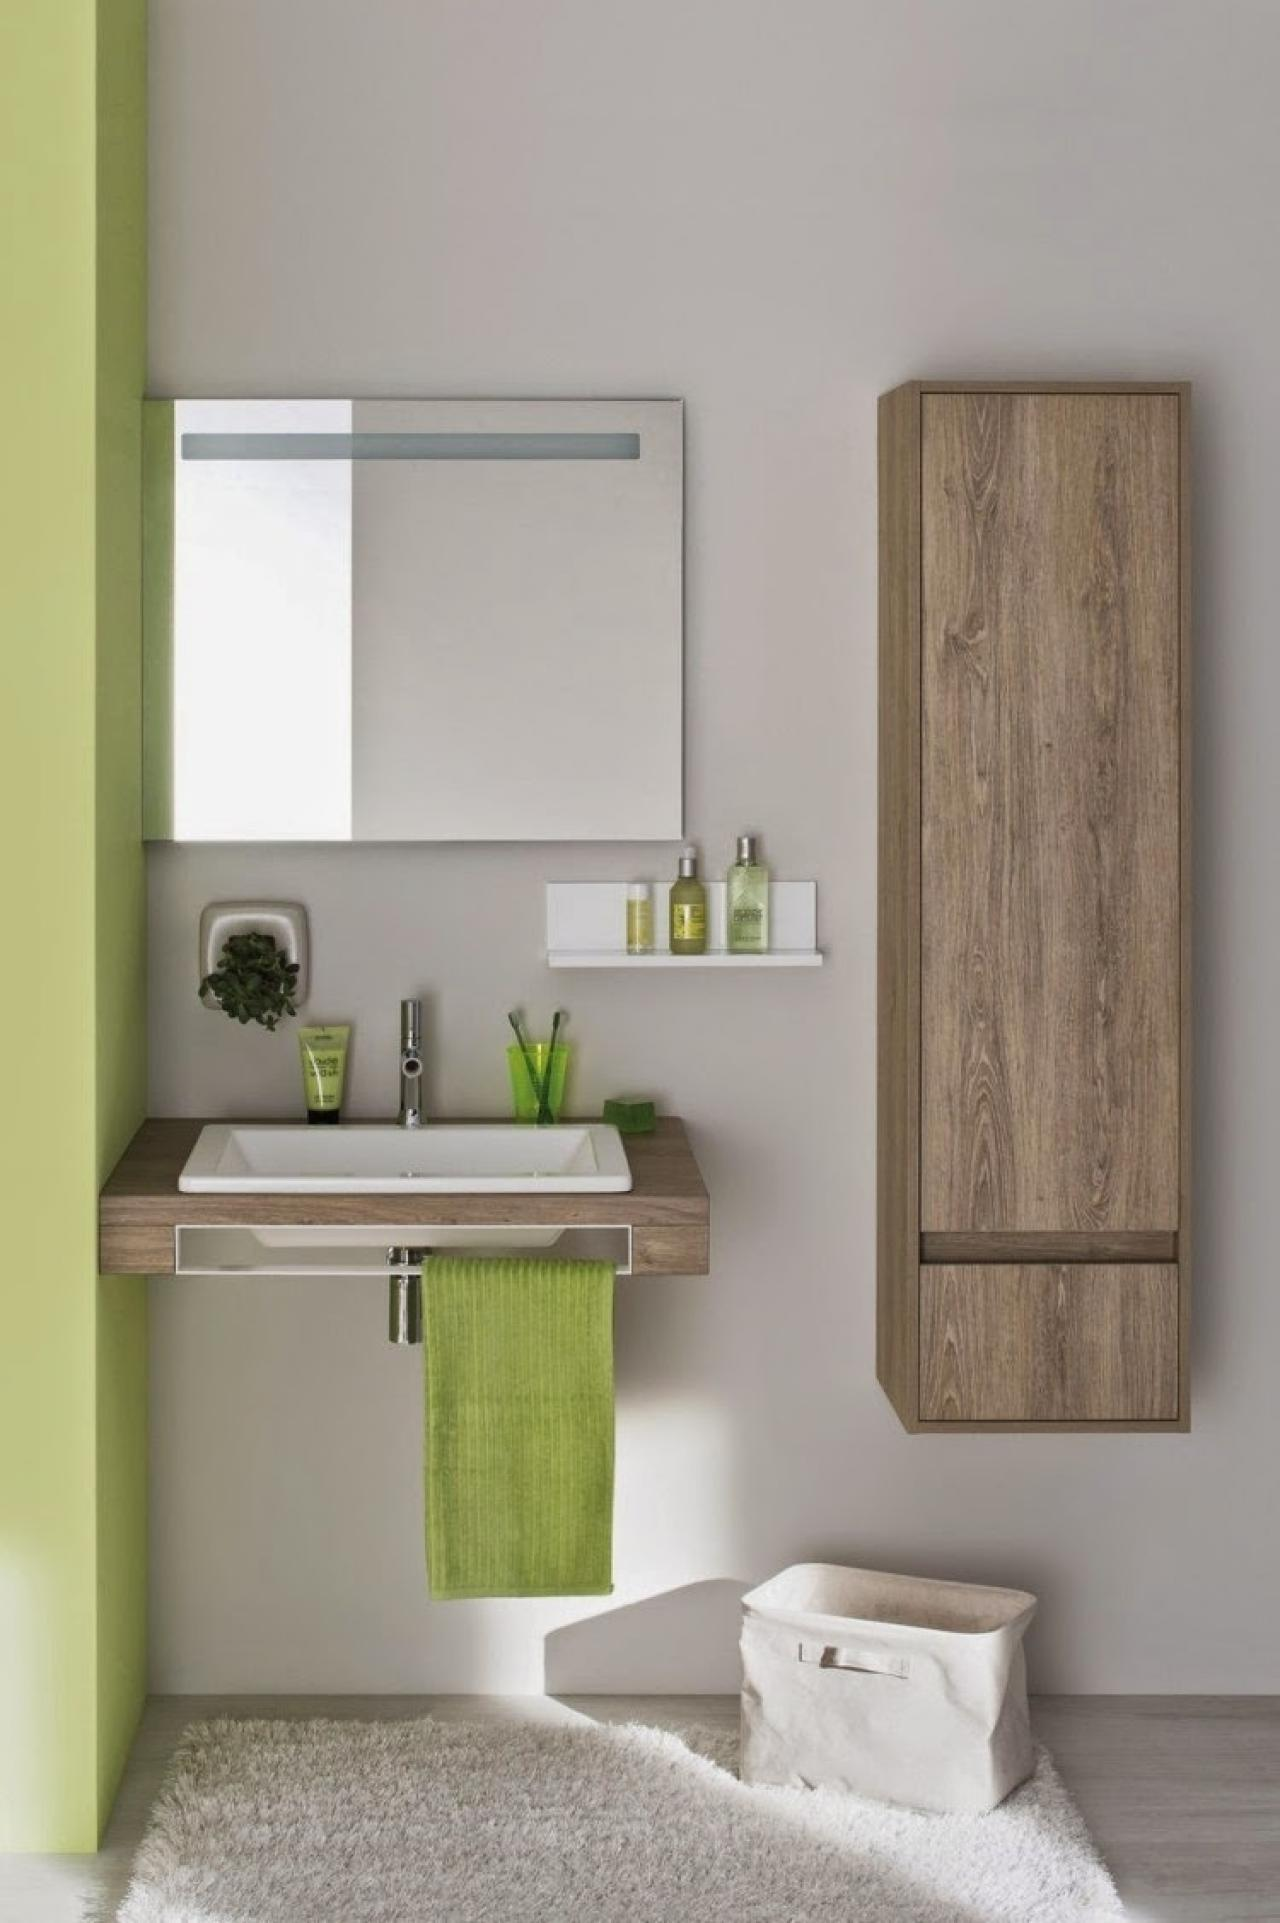 Maximize Your Small Storage Bathroom with This!